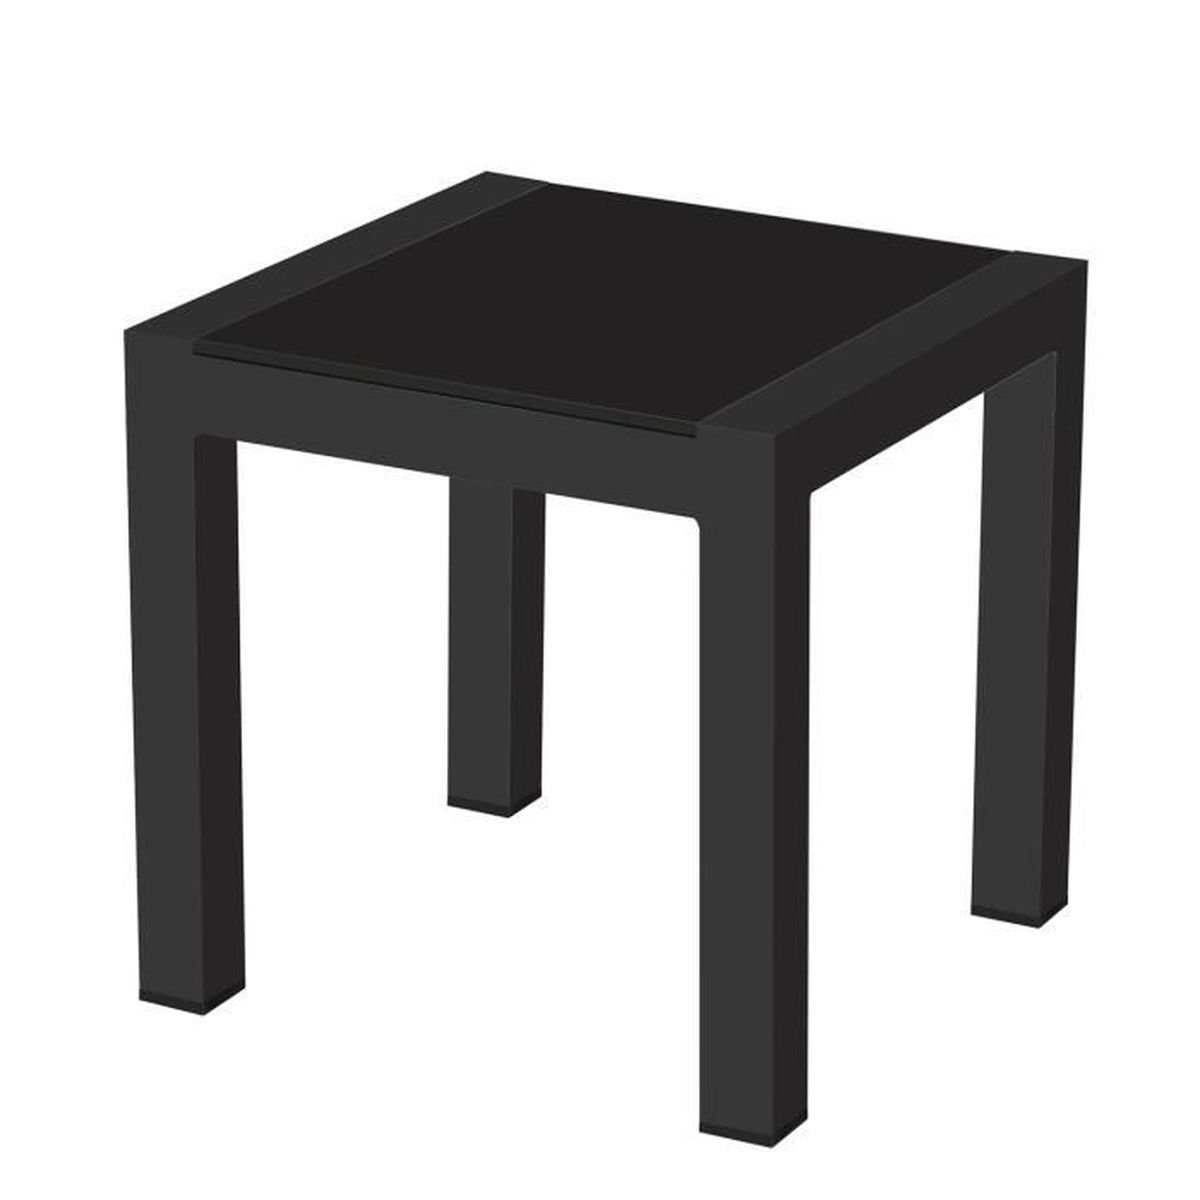 TABLE BASSE Table basse carrée alu anthracite plateau verre no